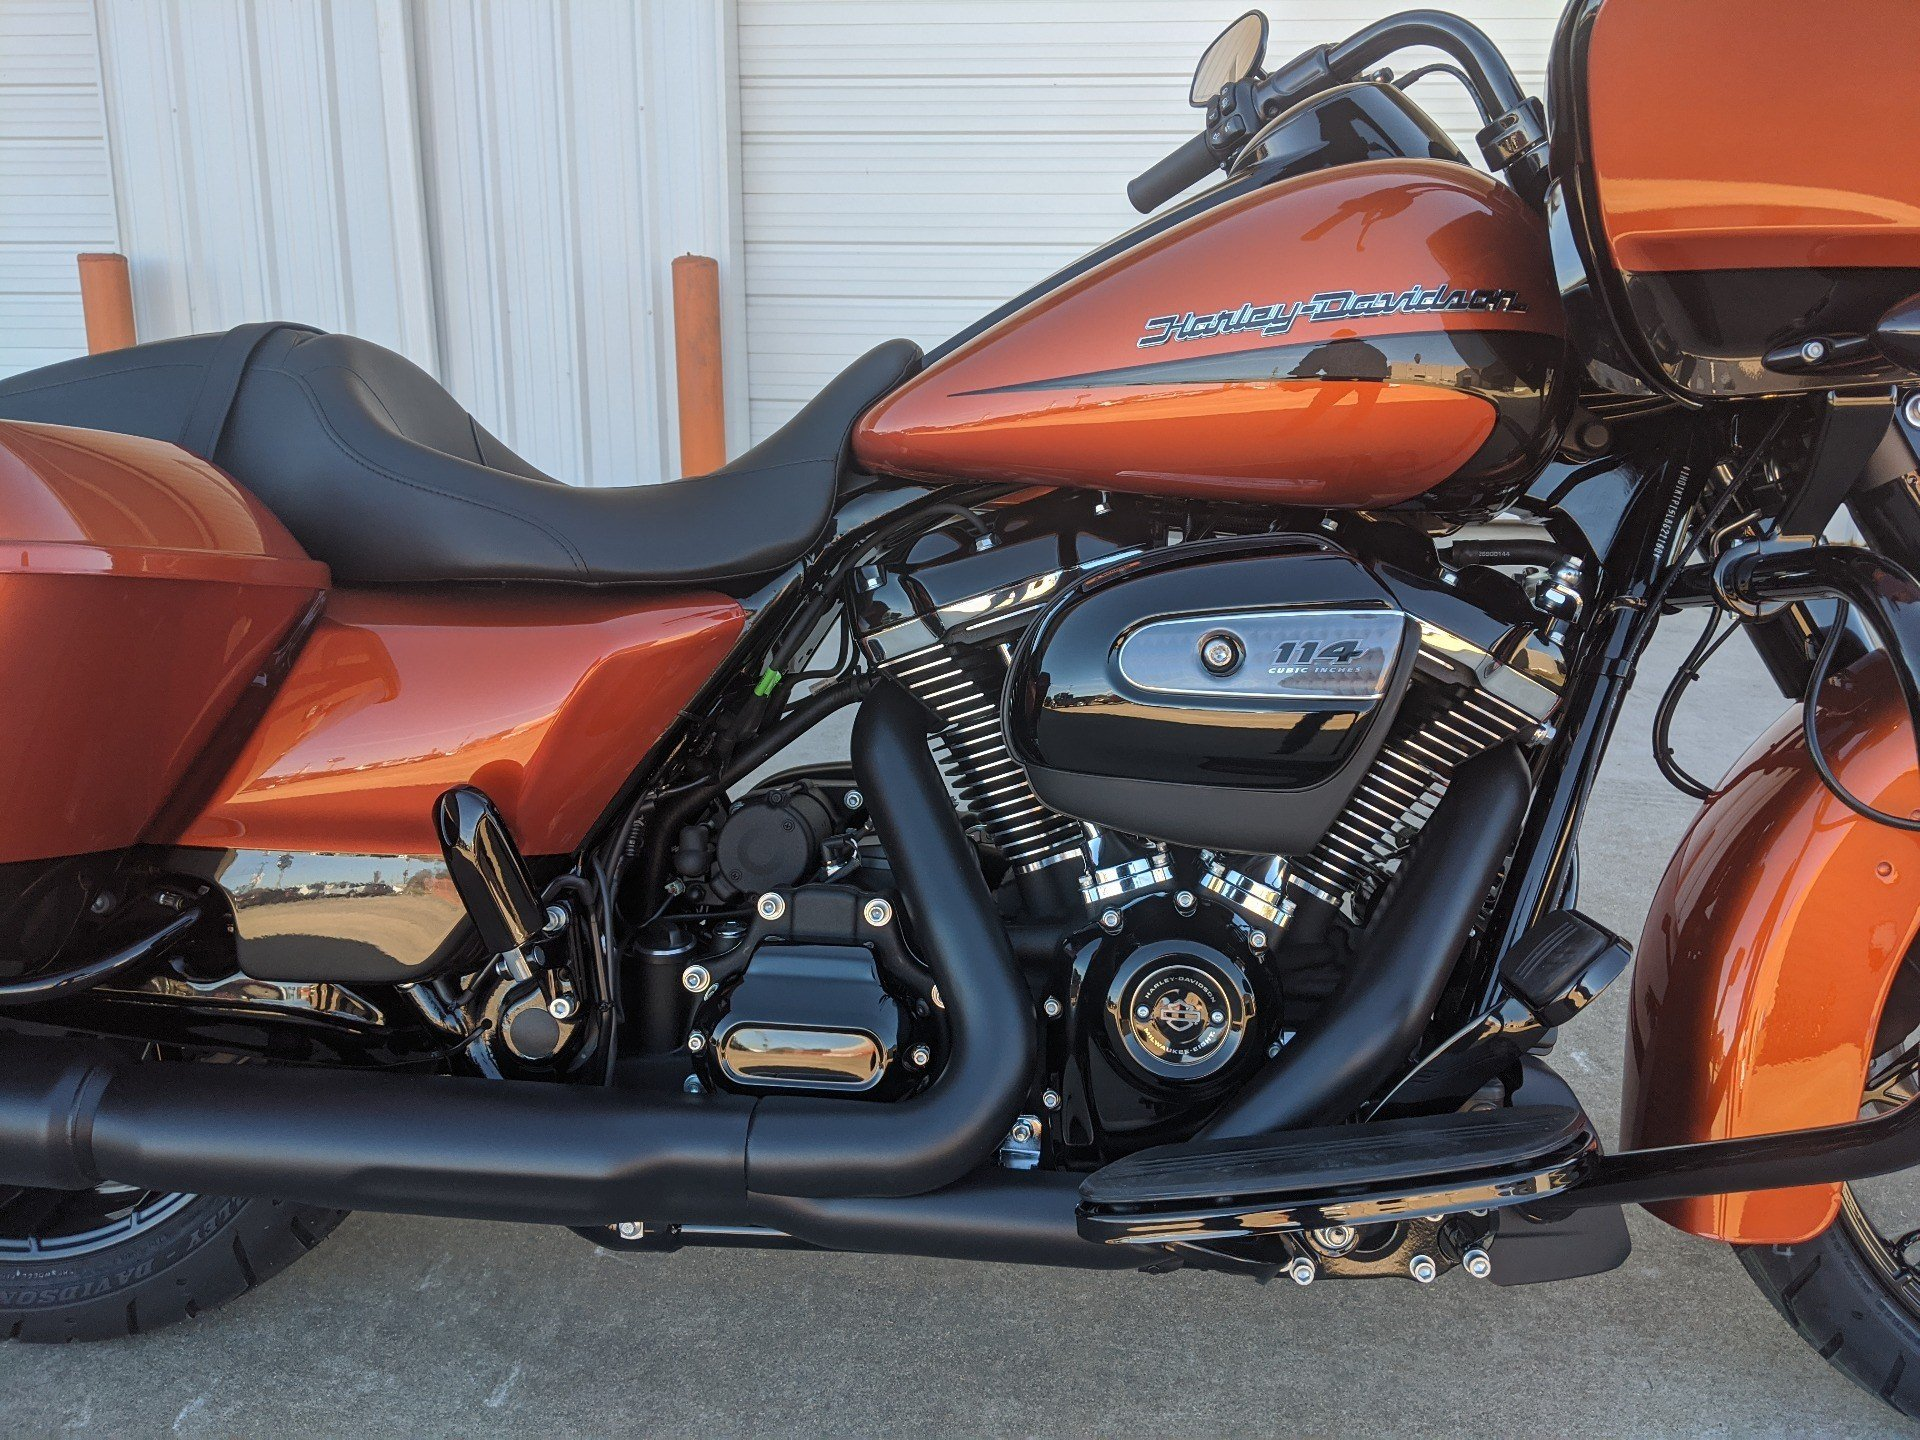 2020 road glide special for sale near me - Photo 4